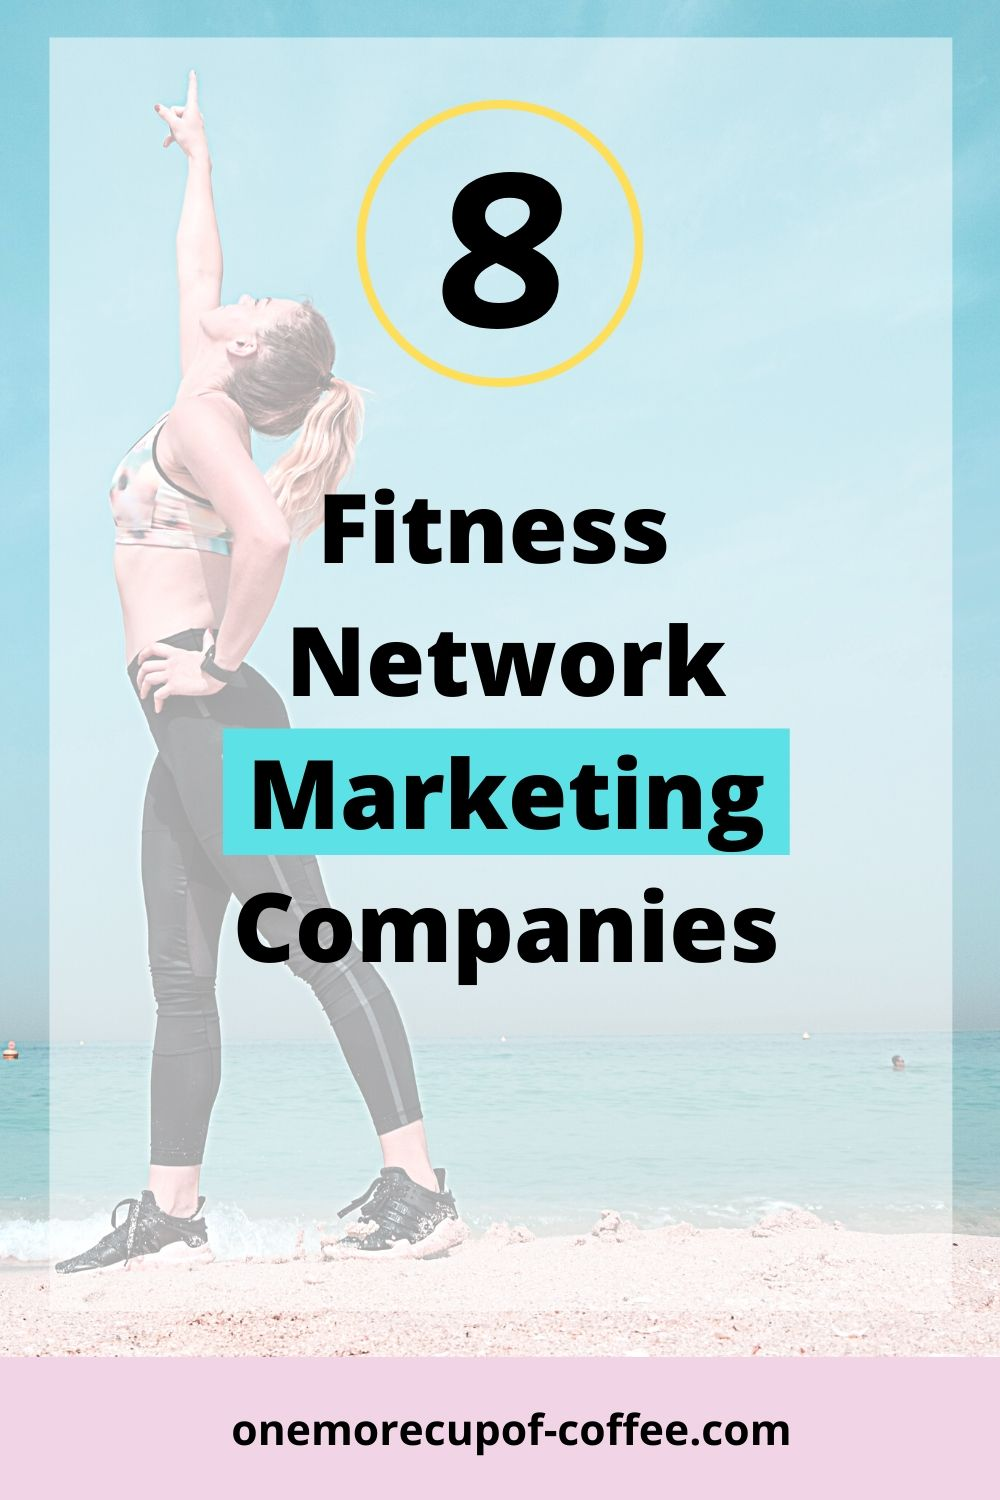 Woman posing to represent Fitness  Network Marketing Companies